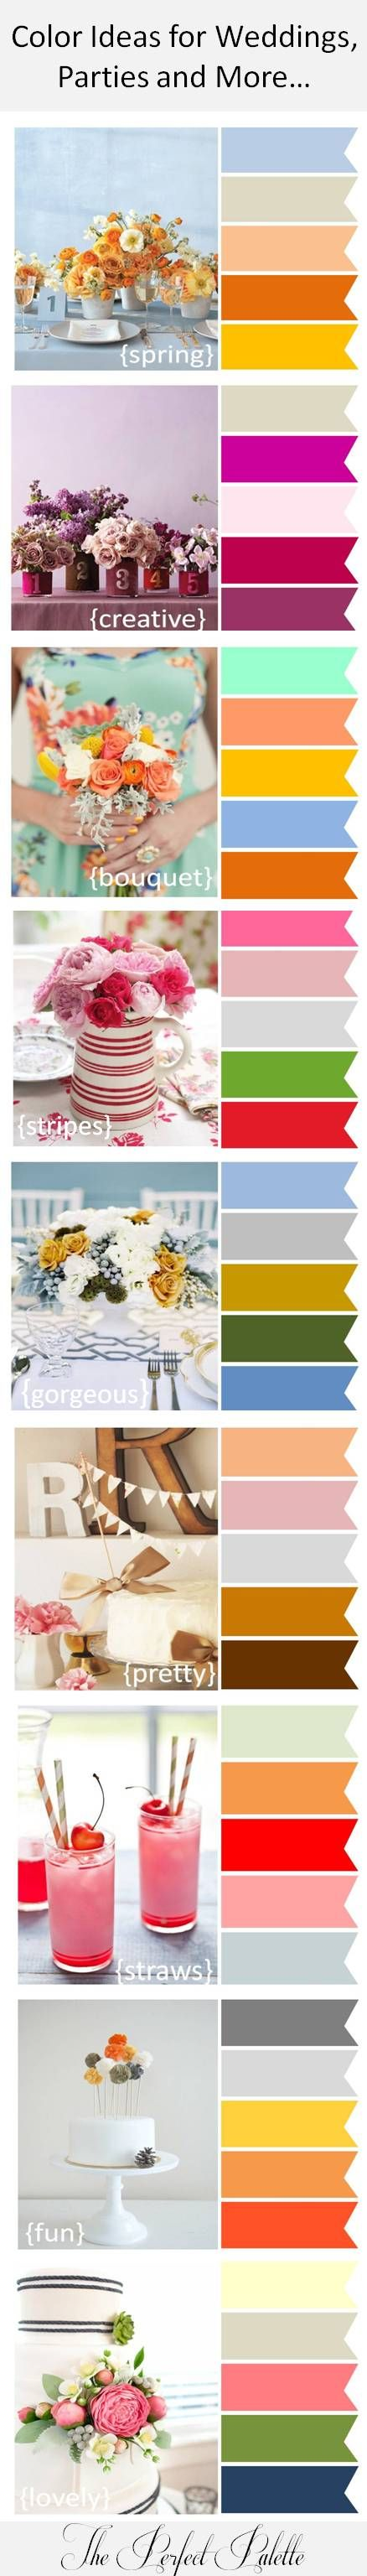 #Color Ideas for Weddings, Parties and More... http://www.theperfectpalette.com/2012/09/color-ideas-for-weddings-parties-and.html